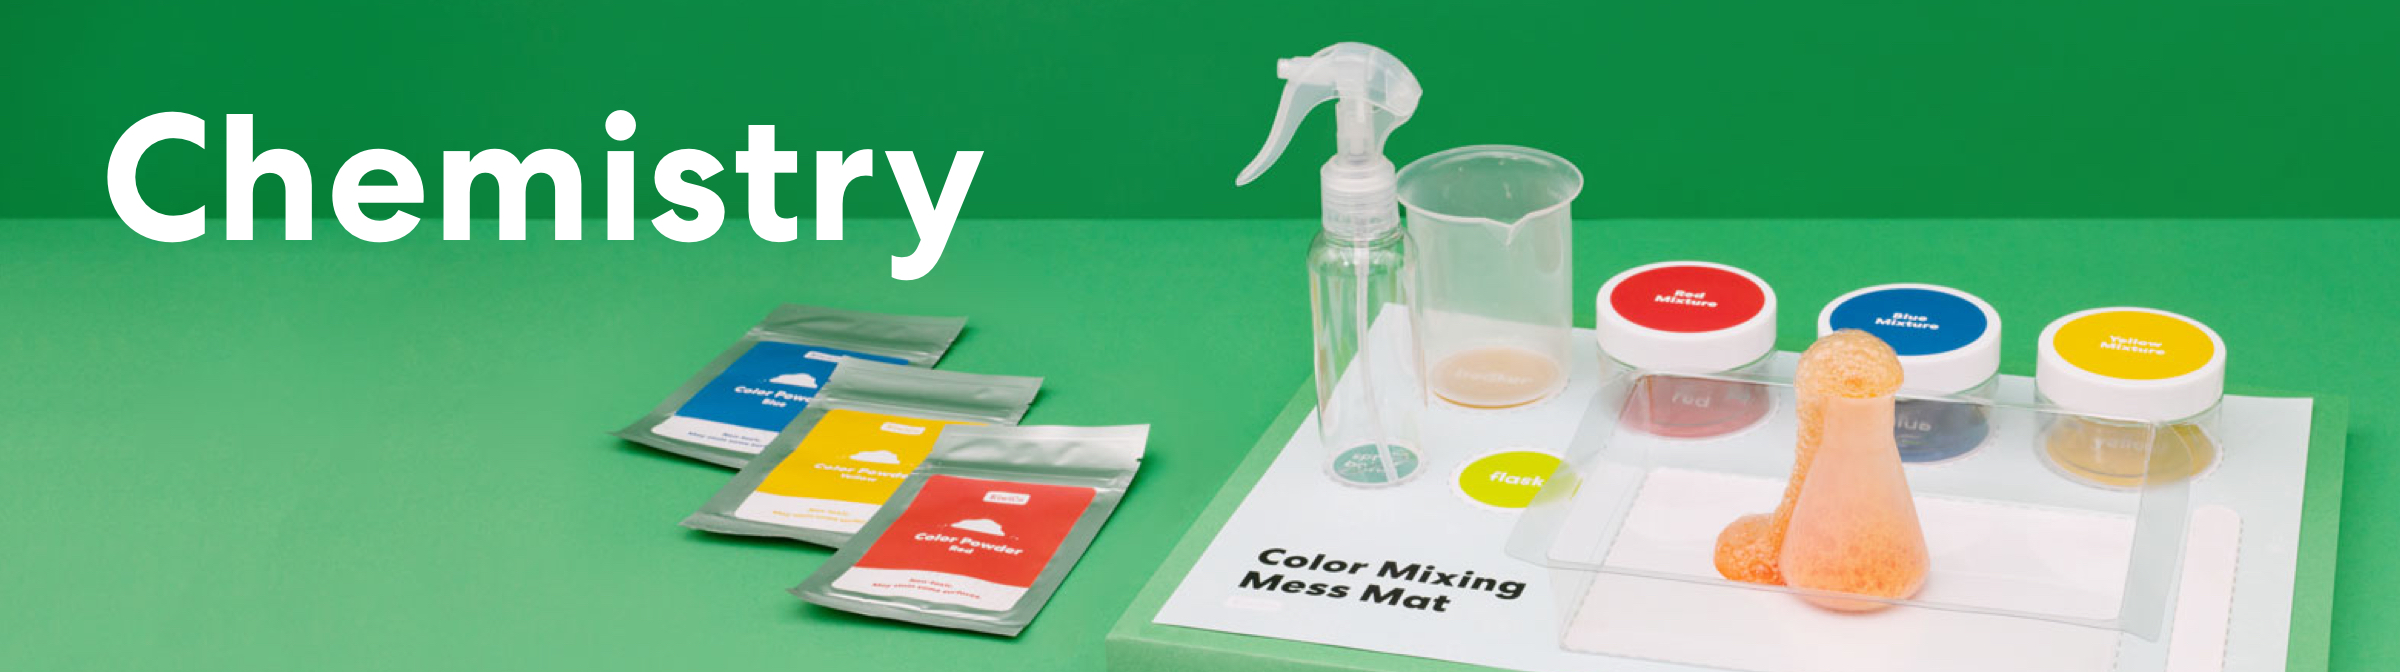 Shop Chemistry projects for all ages.